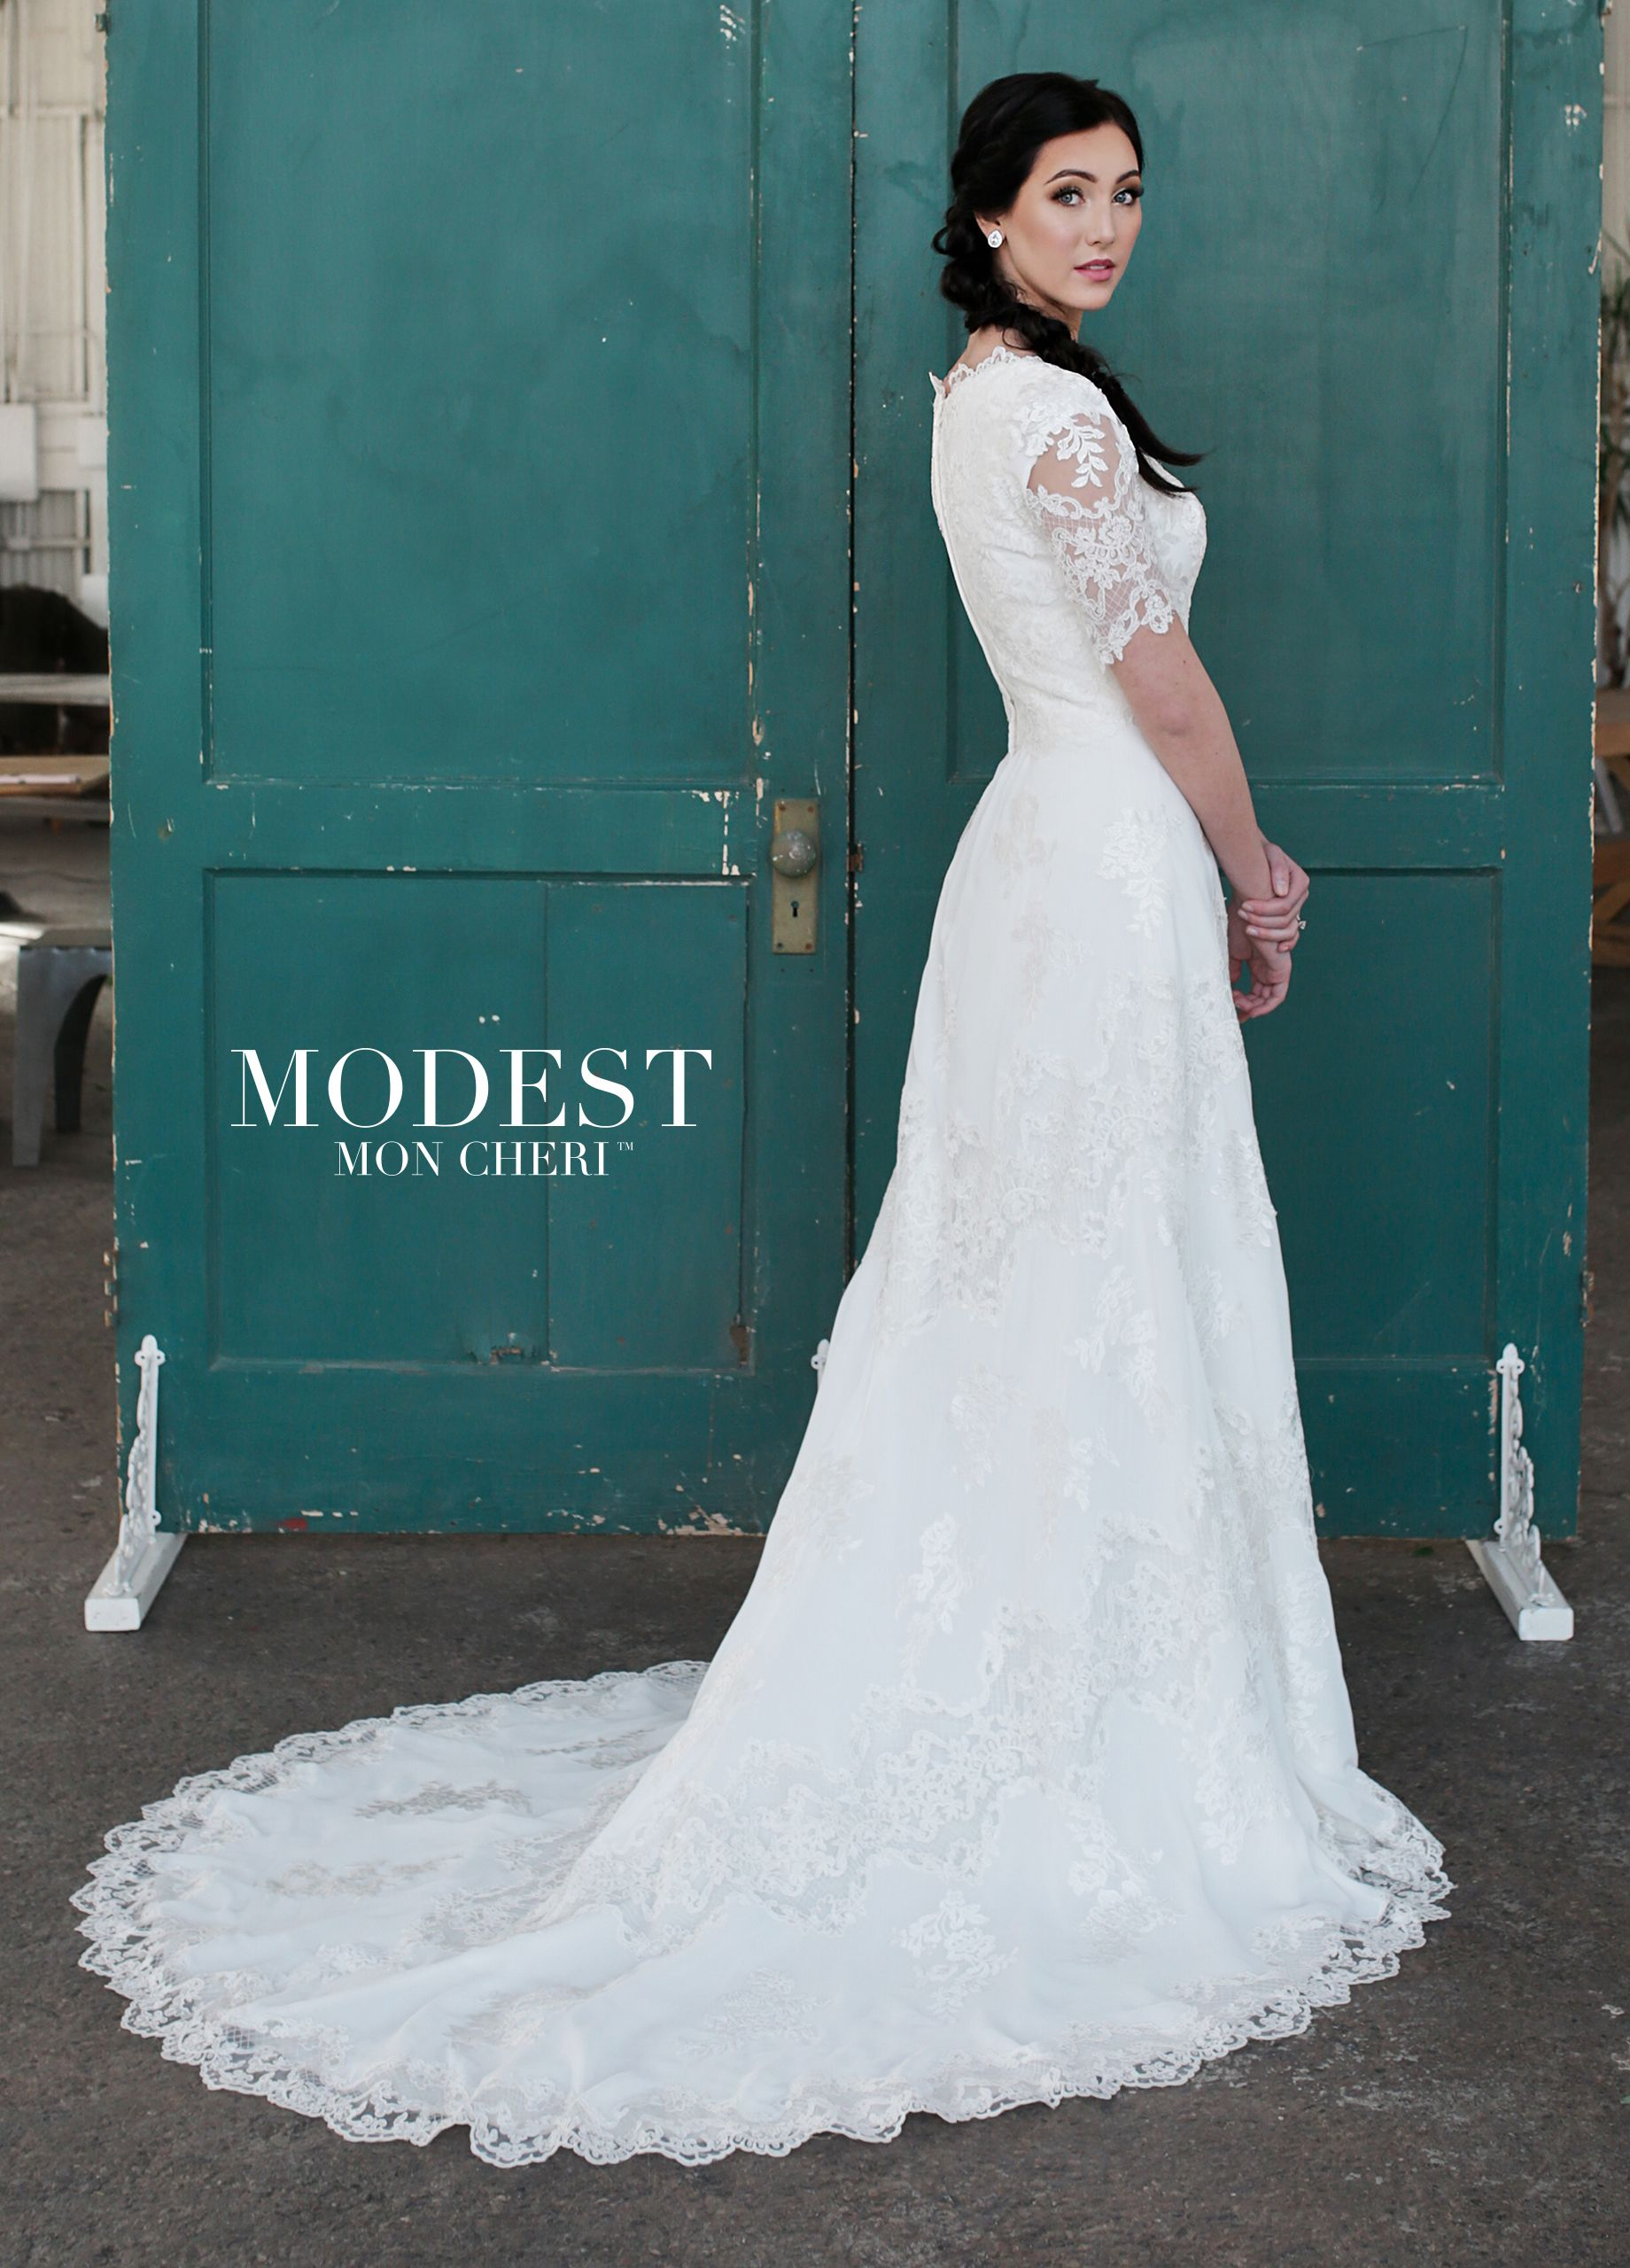 Lace cap sleeve a line wedding dress  Chiffon Tulle u Lace ALine Modest Wedding Gown with Cap Sleeves